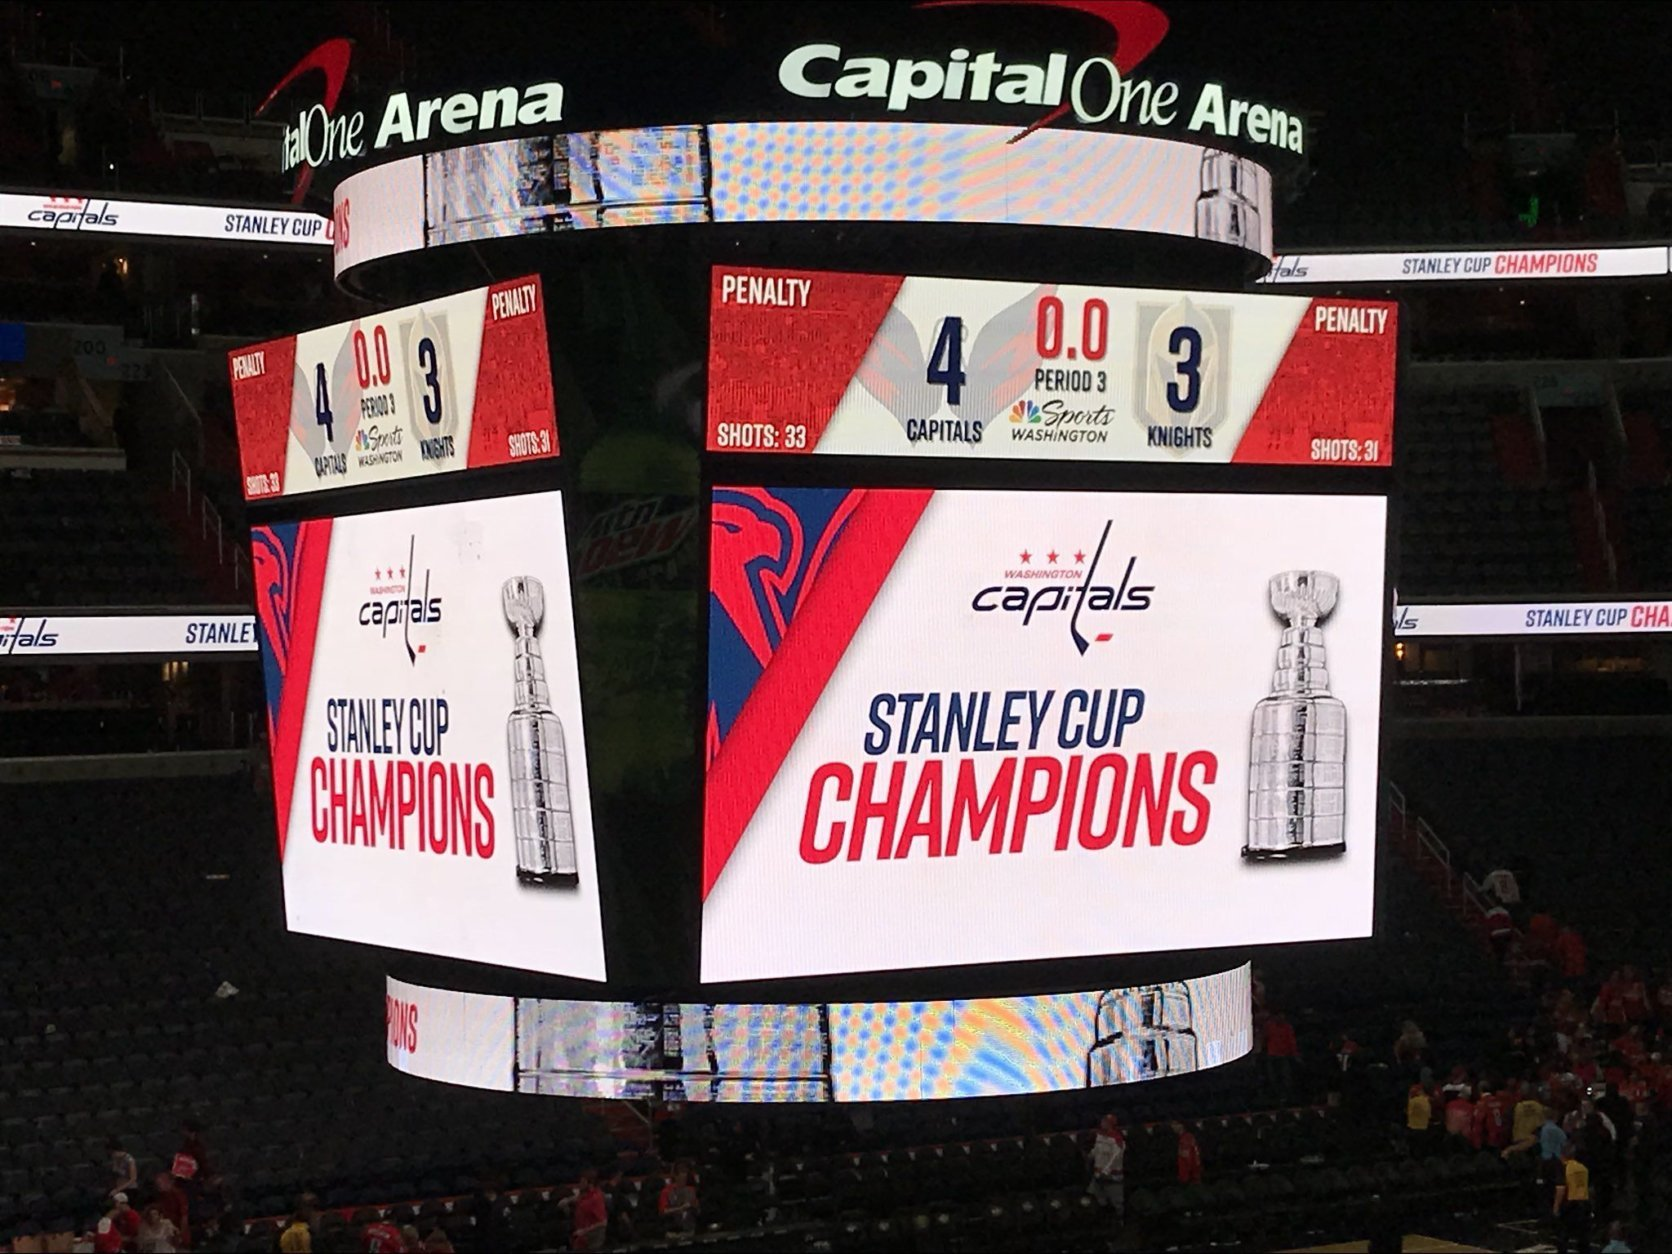 The screens at Capital One Arena in Washington, D.C. announced the win. (WTOP/Michelle Basch)